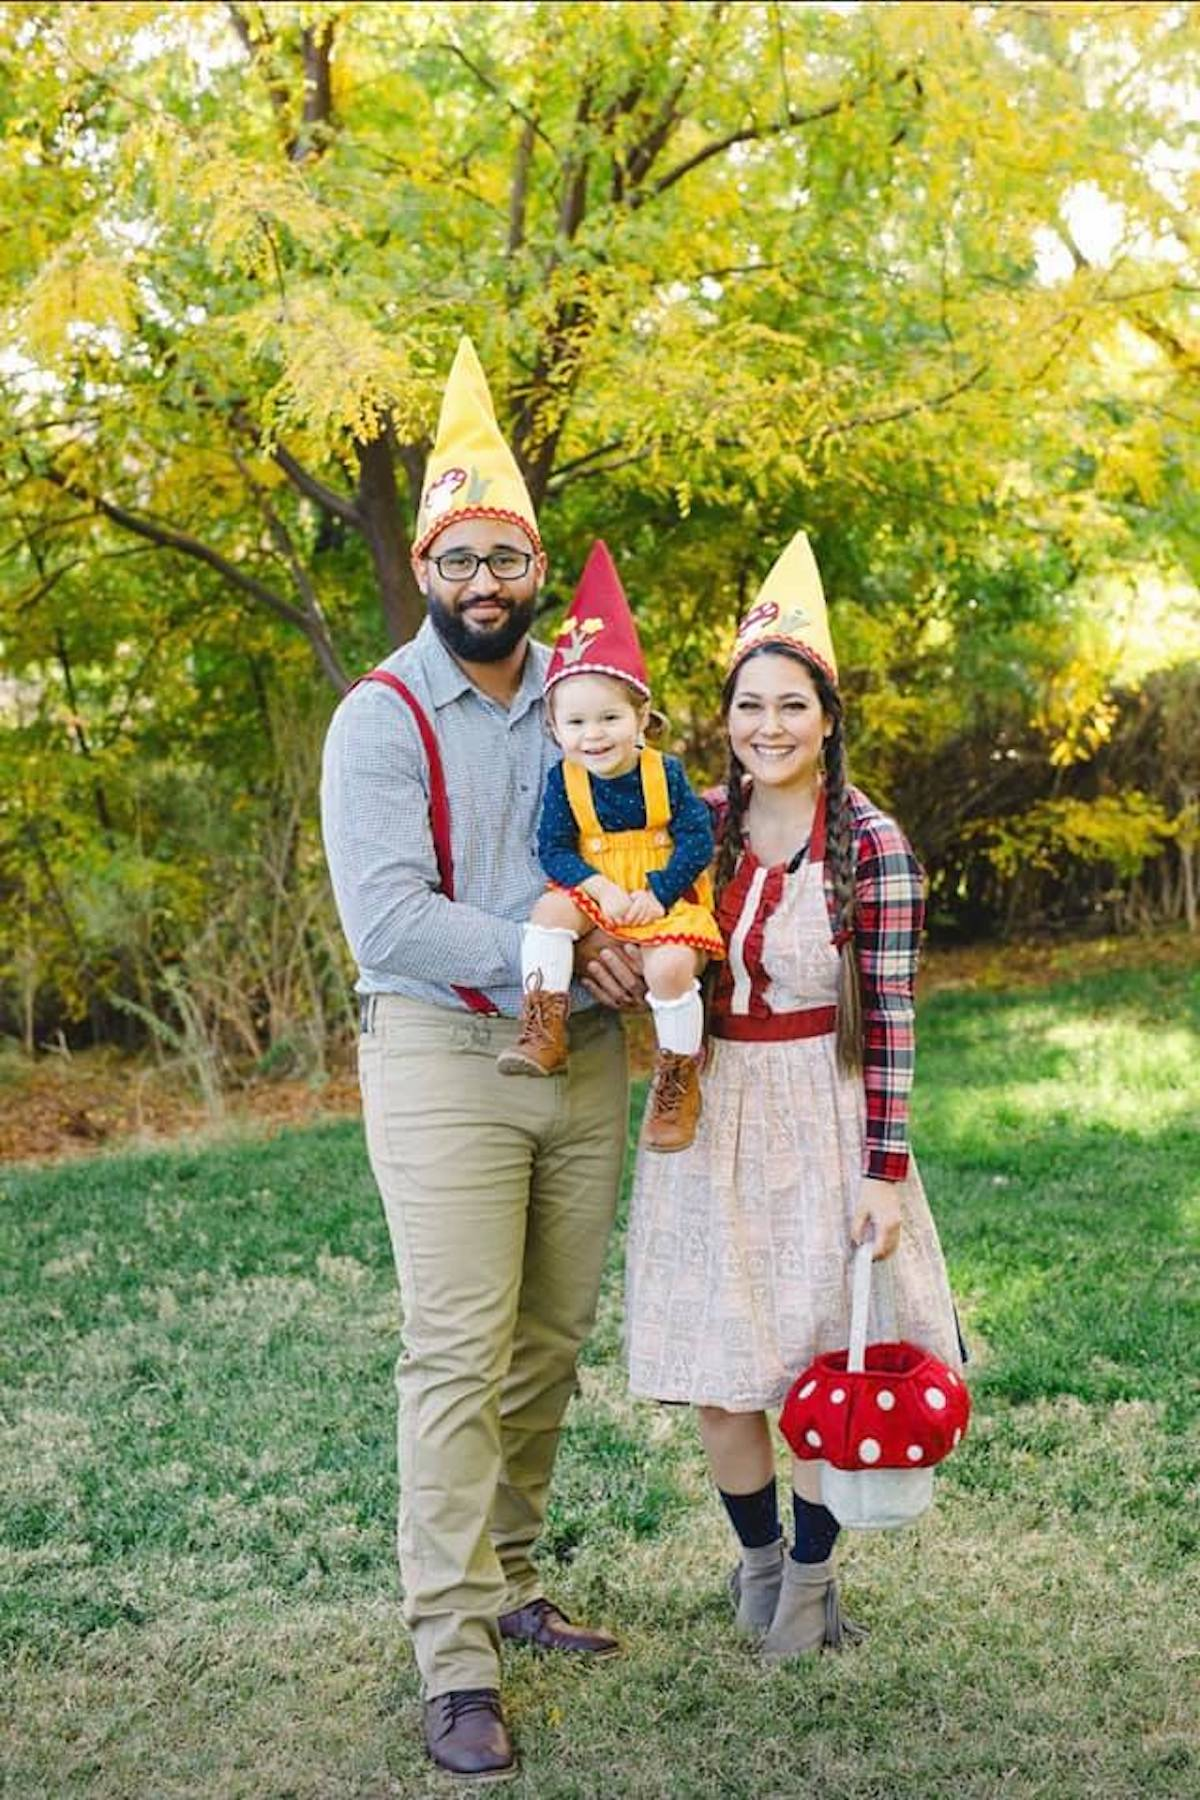 Family wearing gnome costumes stands in grass area and smiles.